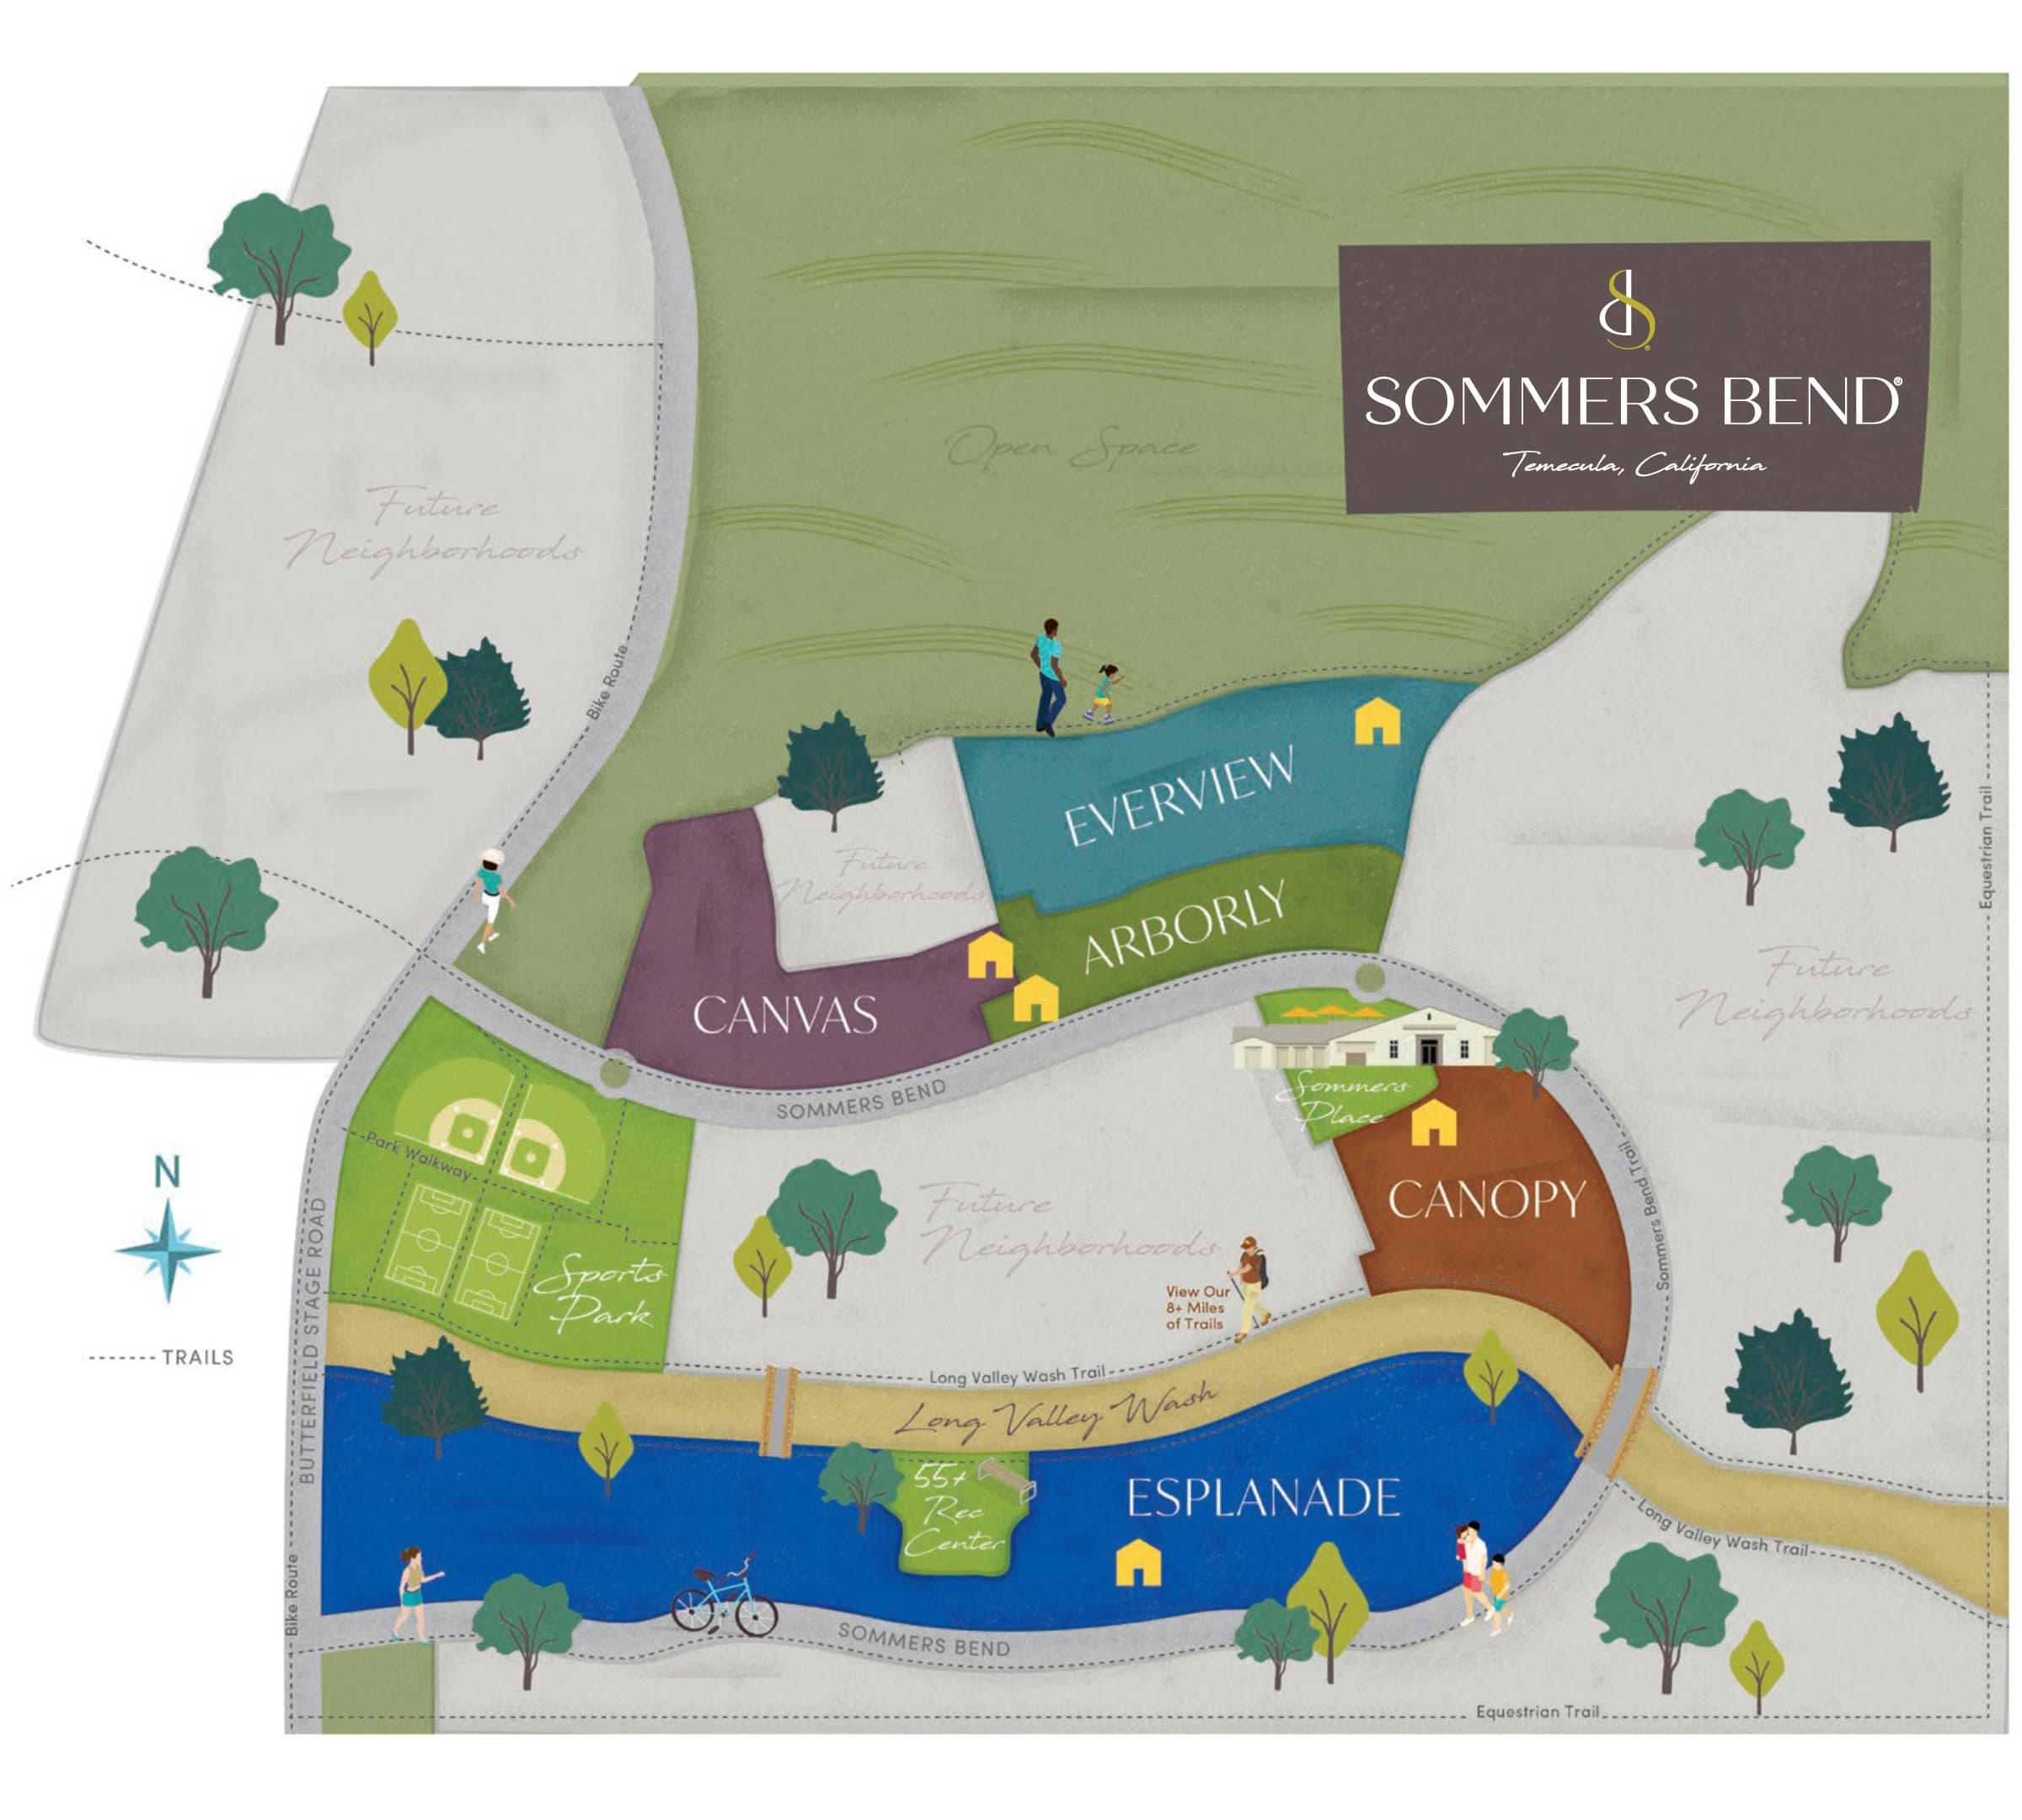 Sommers Bend communities map